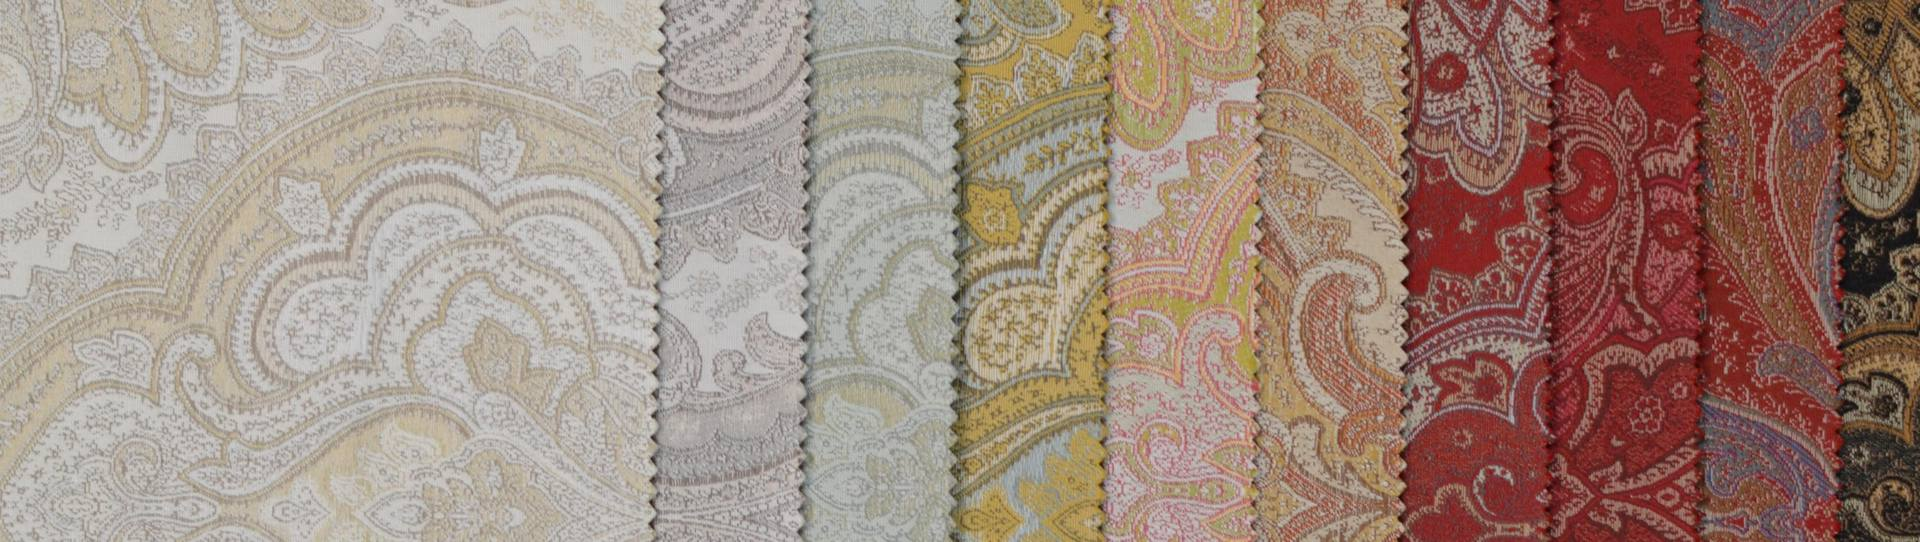 Designers Guild fabric available from Fabric Gallery and Interiors of York